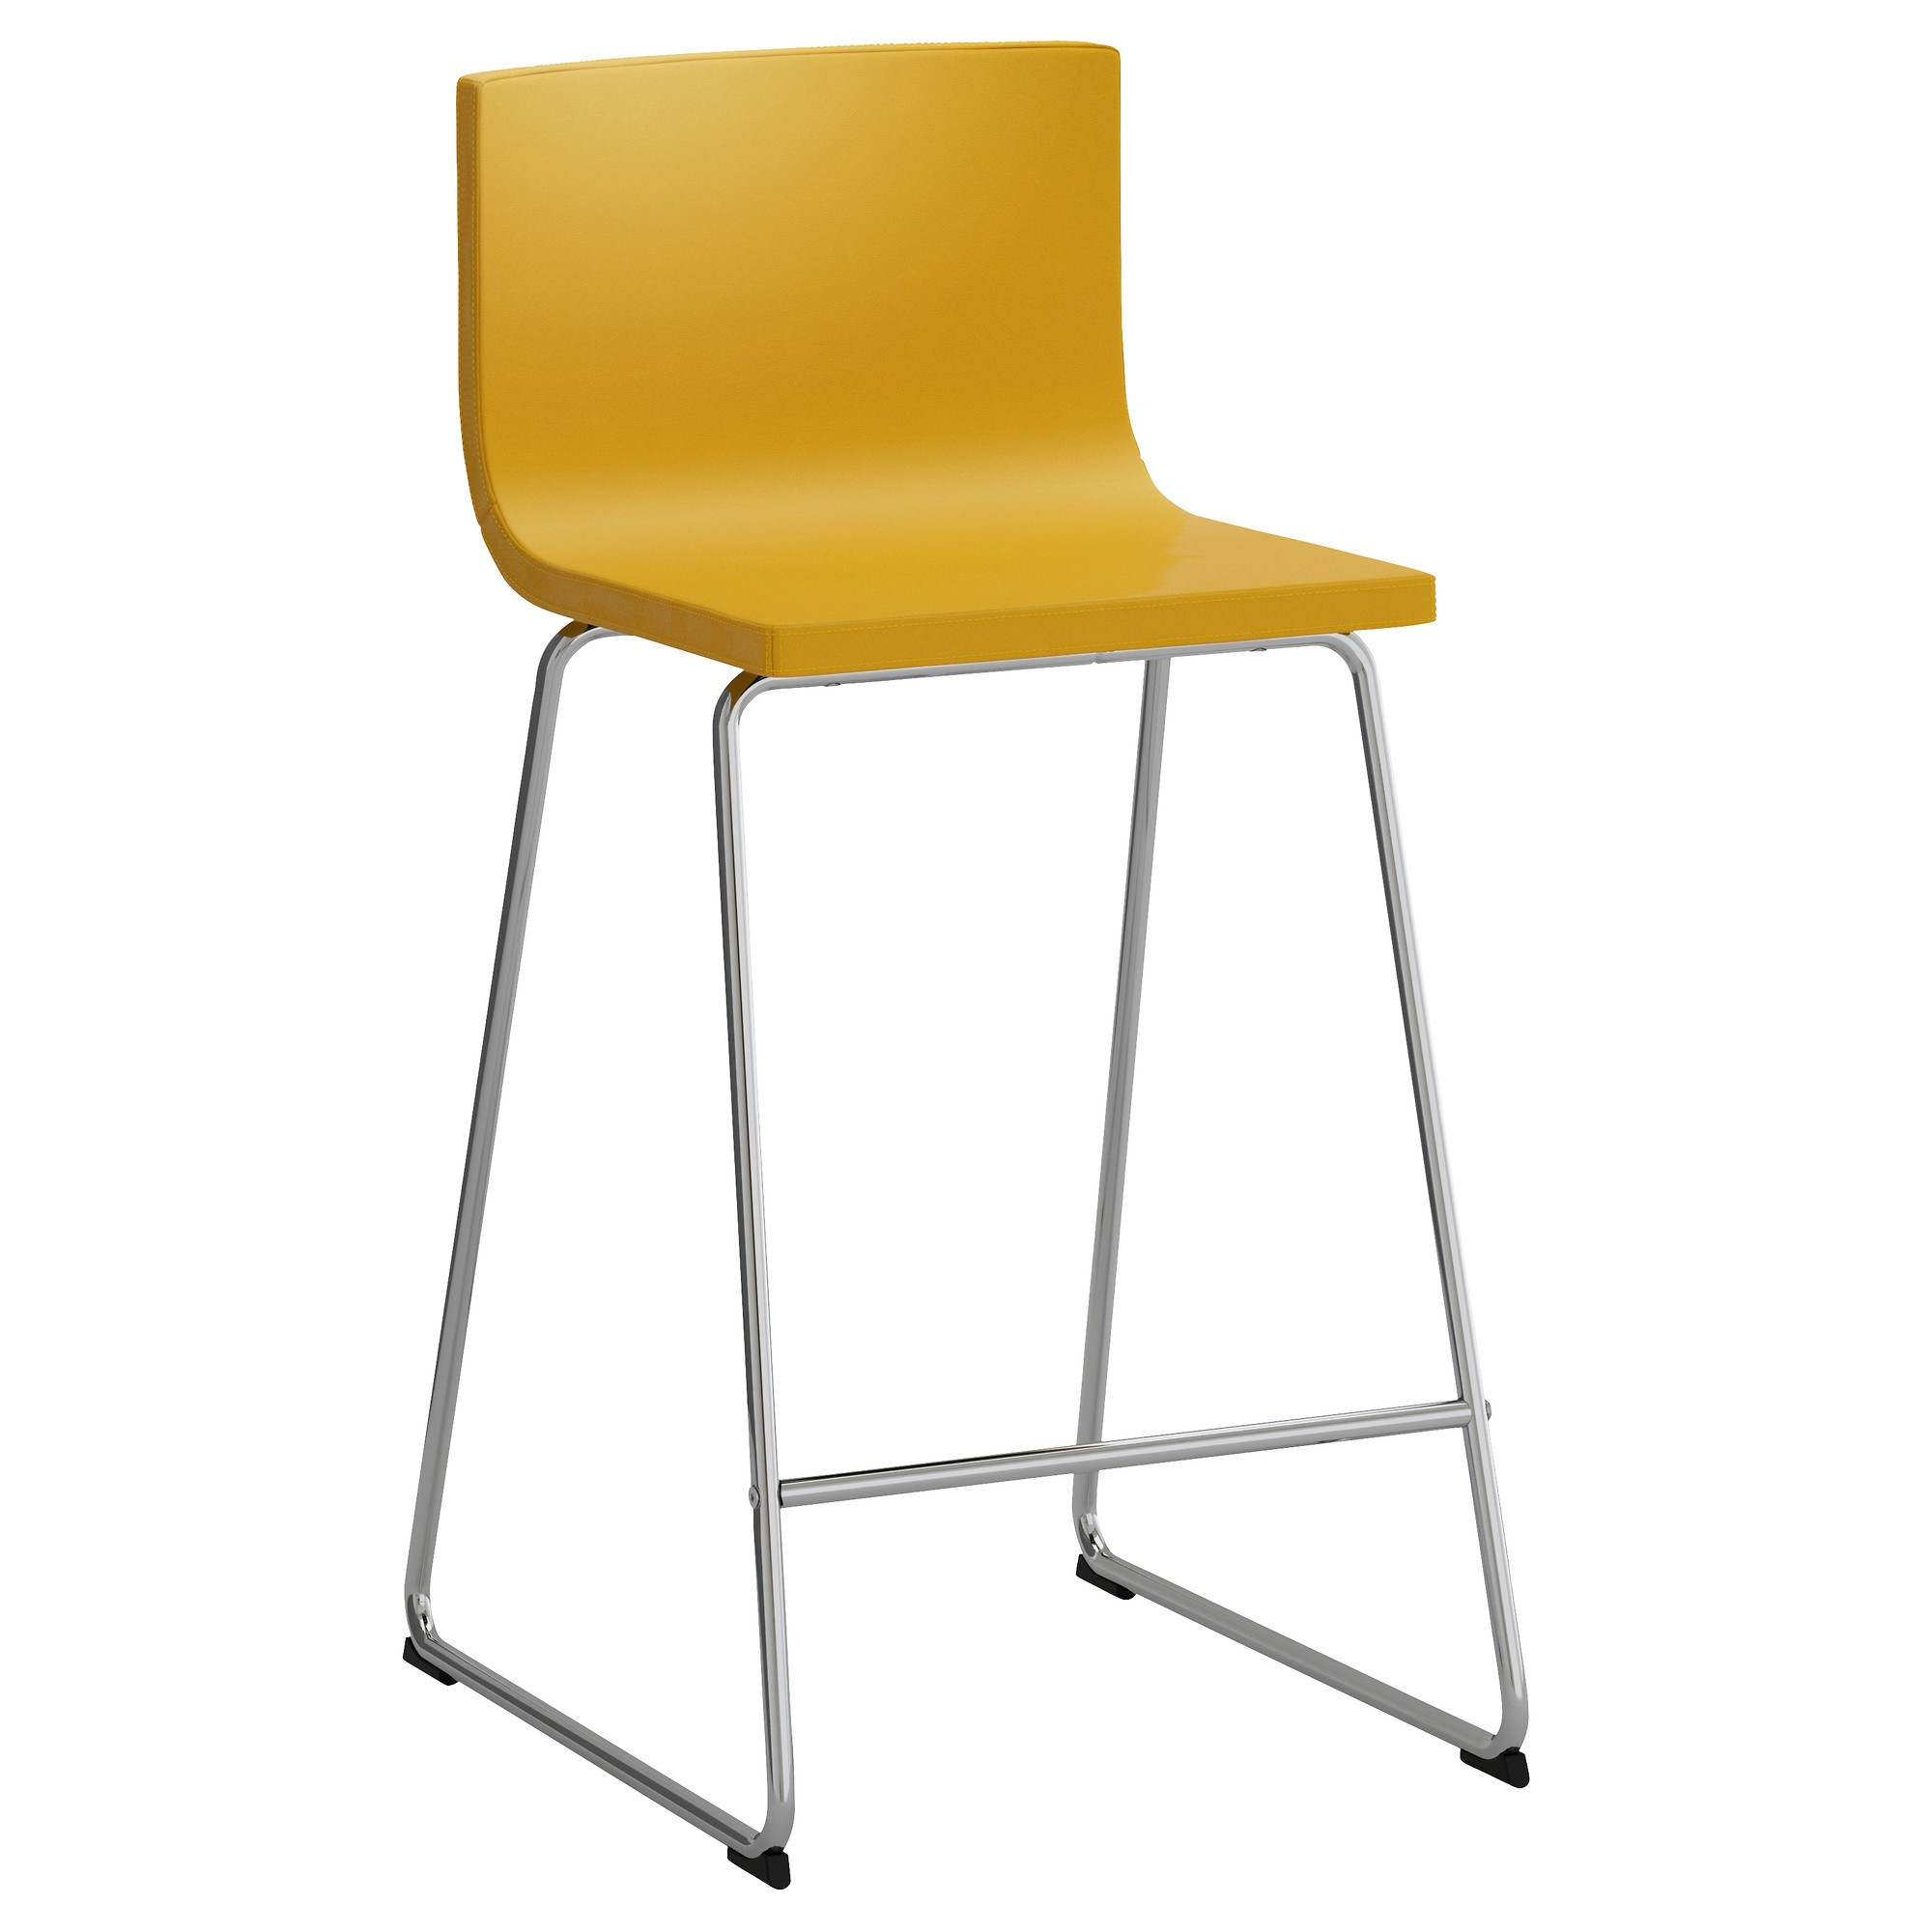 chaise haute tabouret de bar ikea chaise id es de On chaise tabouret ikea